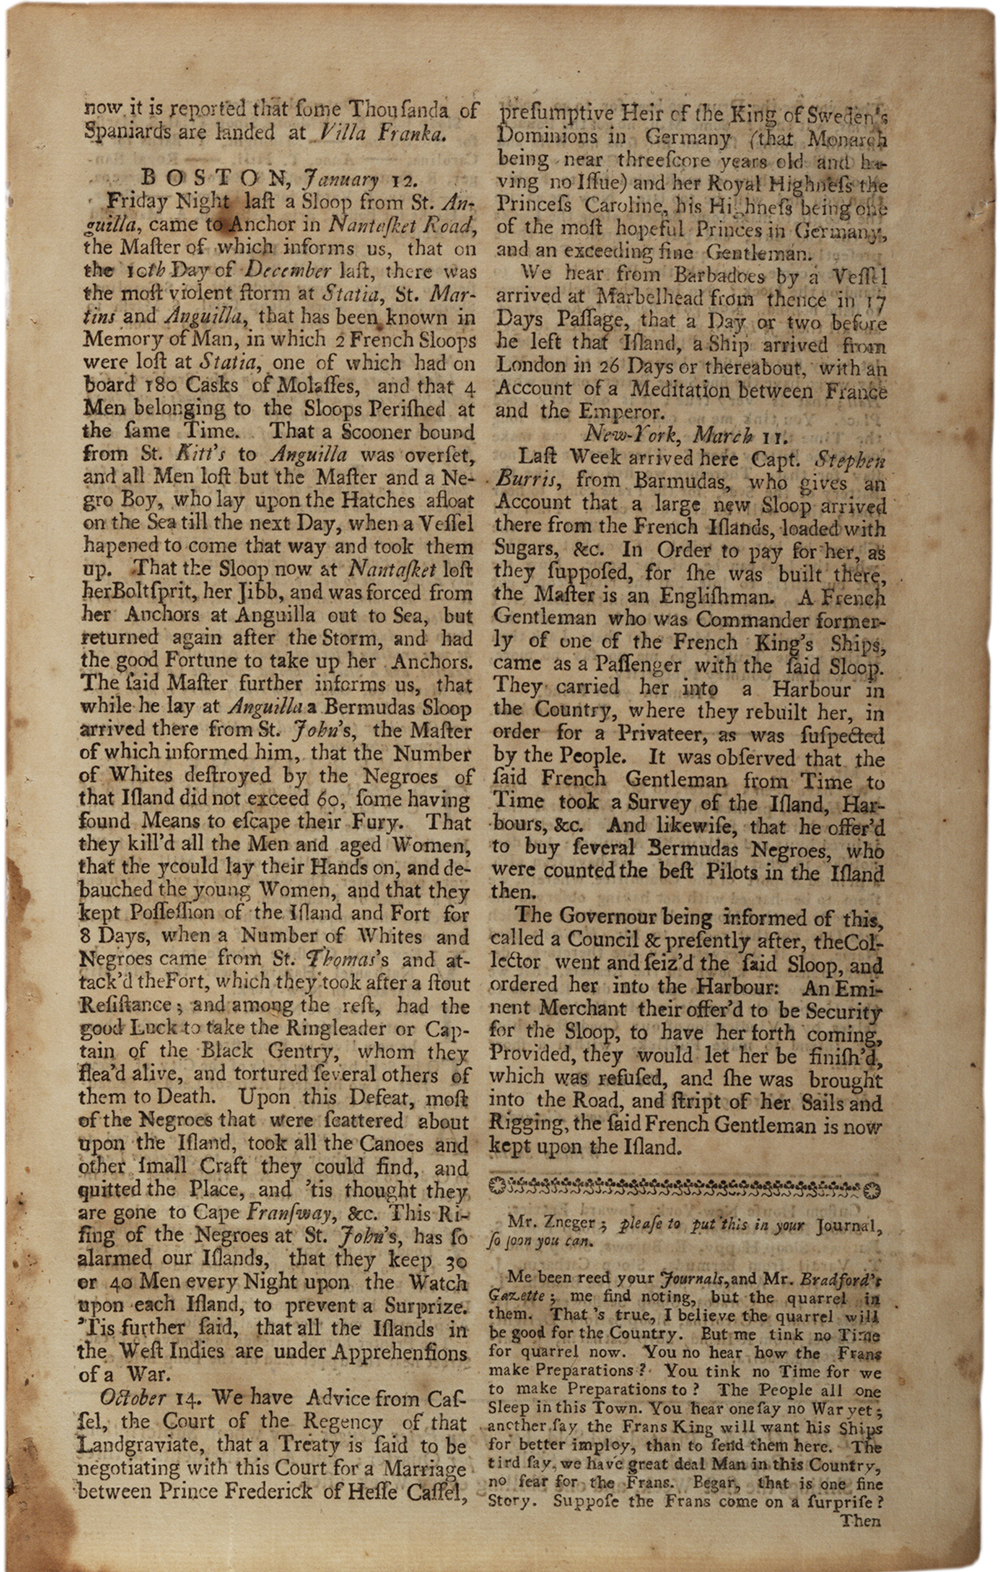 1733 rebellion Living easton home page  1733 - the virgin islands rebellion on st john island, 40 white people reported killed 1736 - antigua 88 executions of those who revolted.